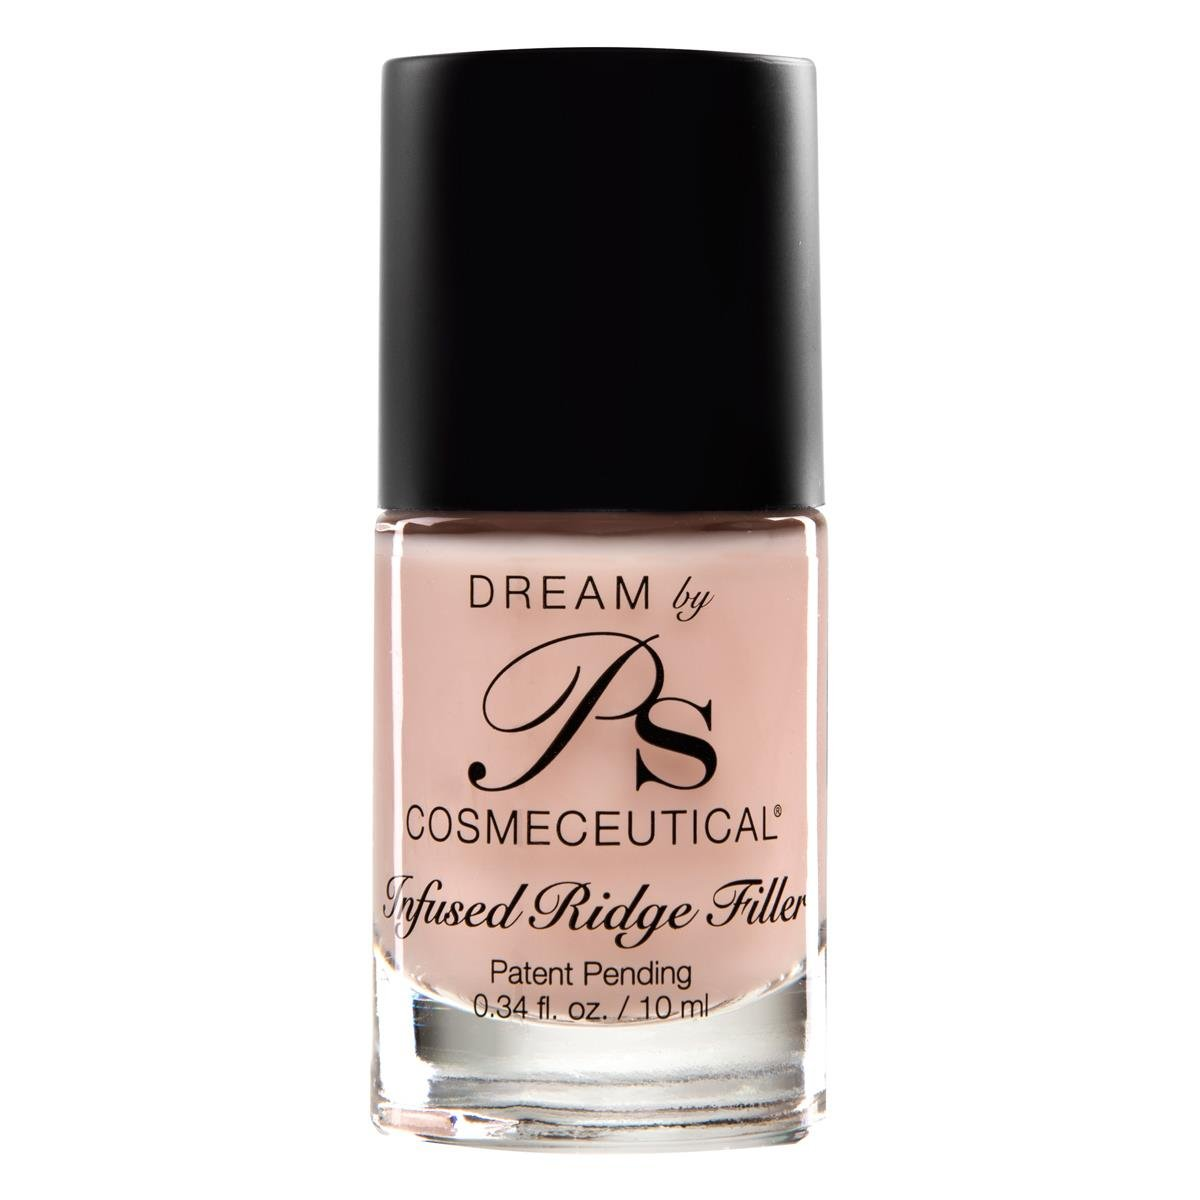 PS Polish Natural Nail Polish Foundation Ridge-Filler, Nail-Strengthener, Safe Non-Toxic Professional Nail Art and Polish Ridge Filling Base Coat, Best Polishes for Manicure, Pedicure - MSRP $17.99 by DREAM BY PS COSMECEUTICAL